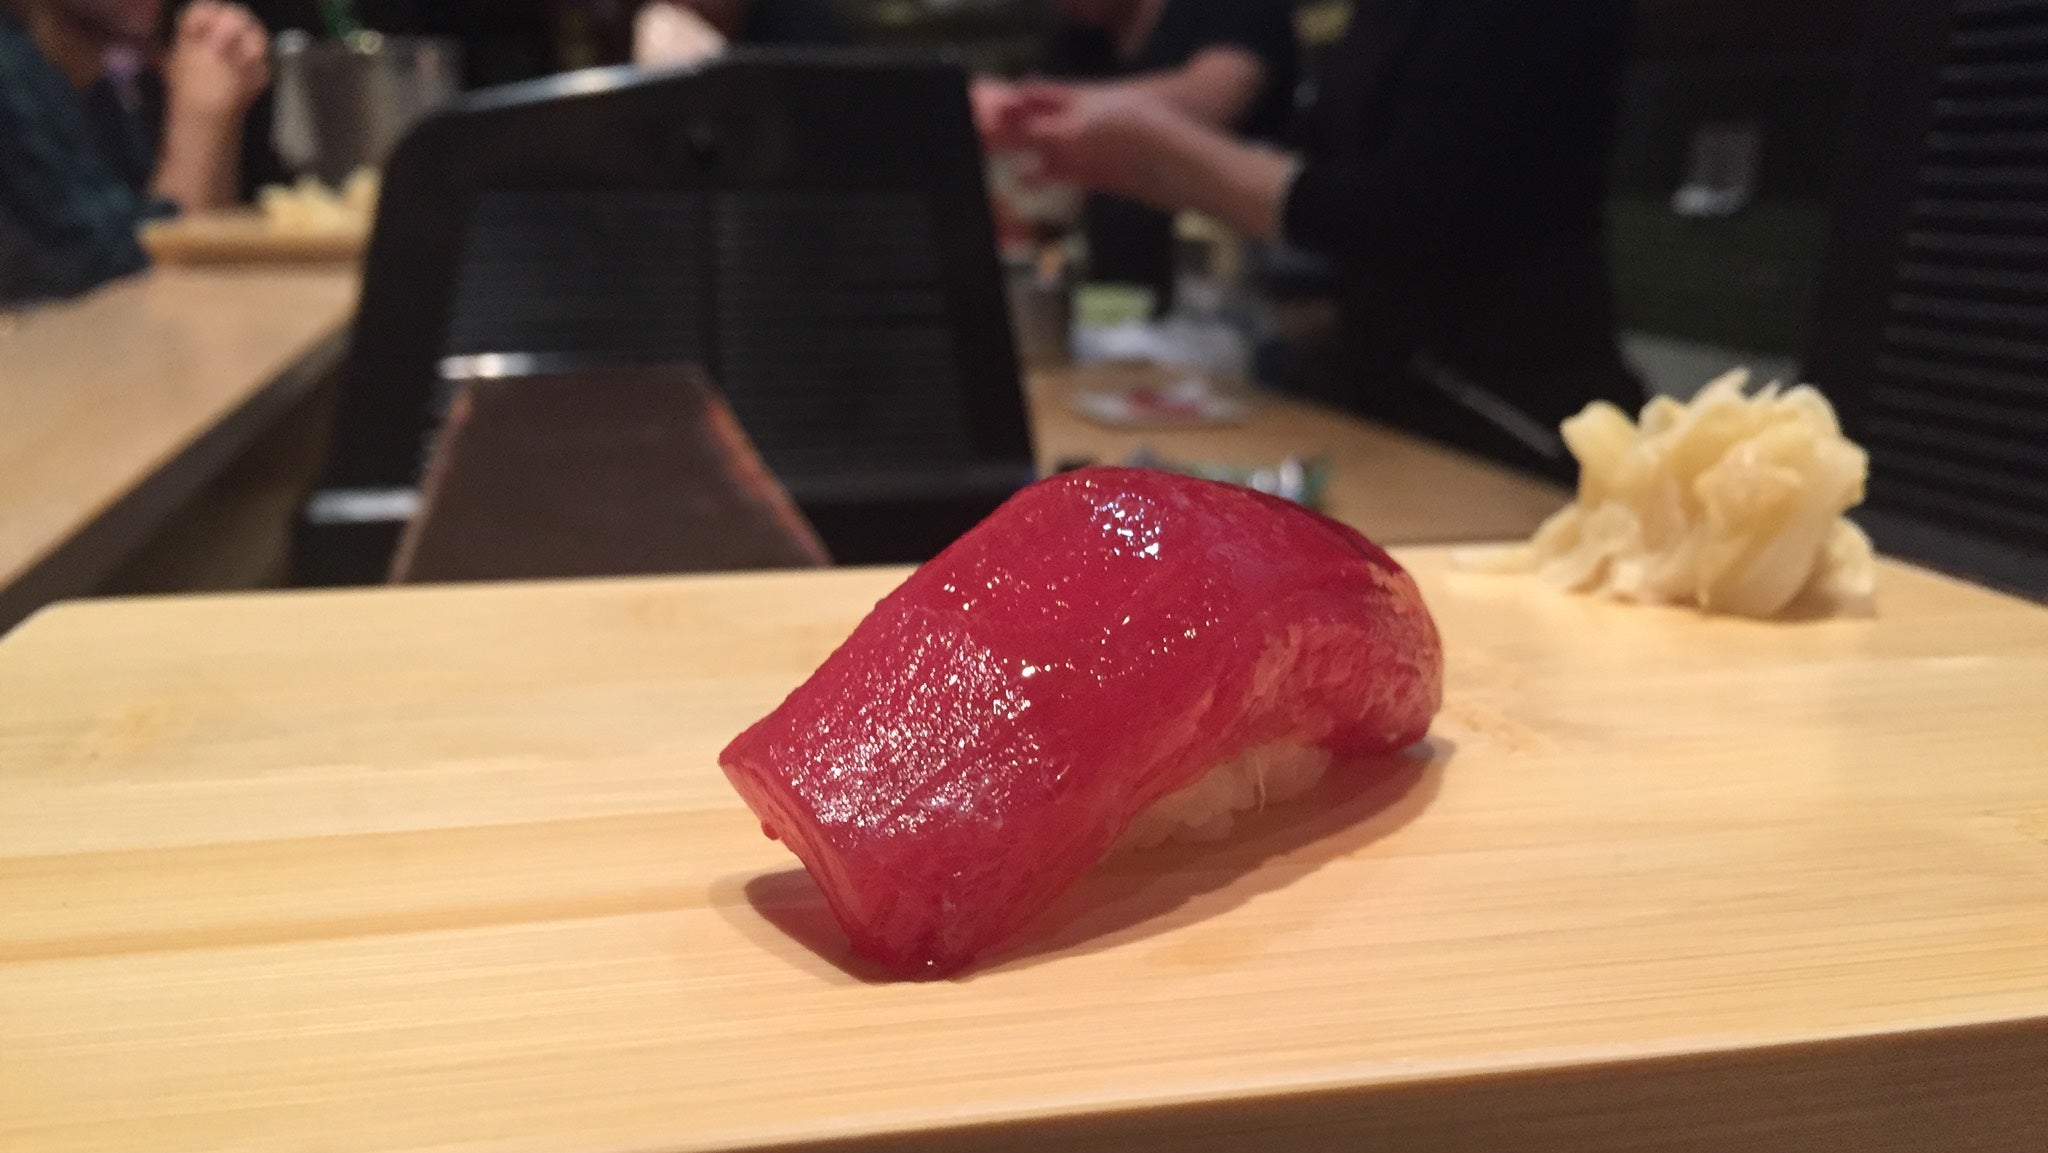 Media Goes Wild After One Guy Gets Sick From Sushi